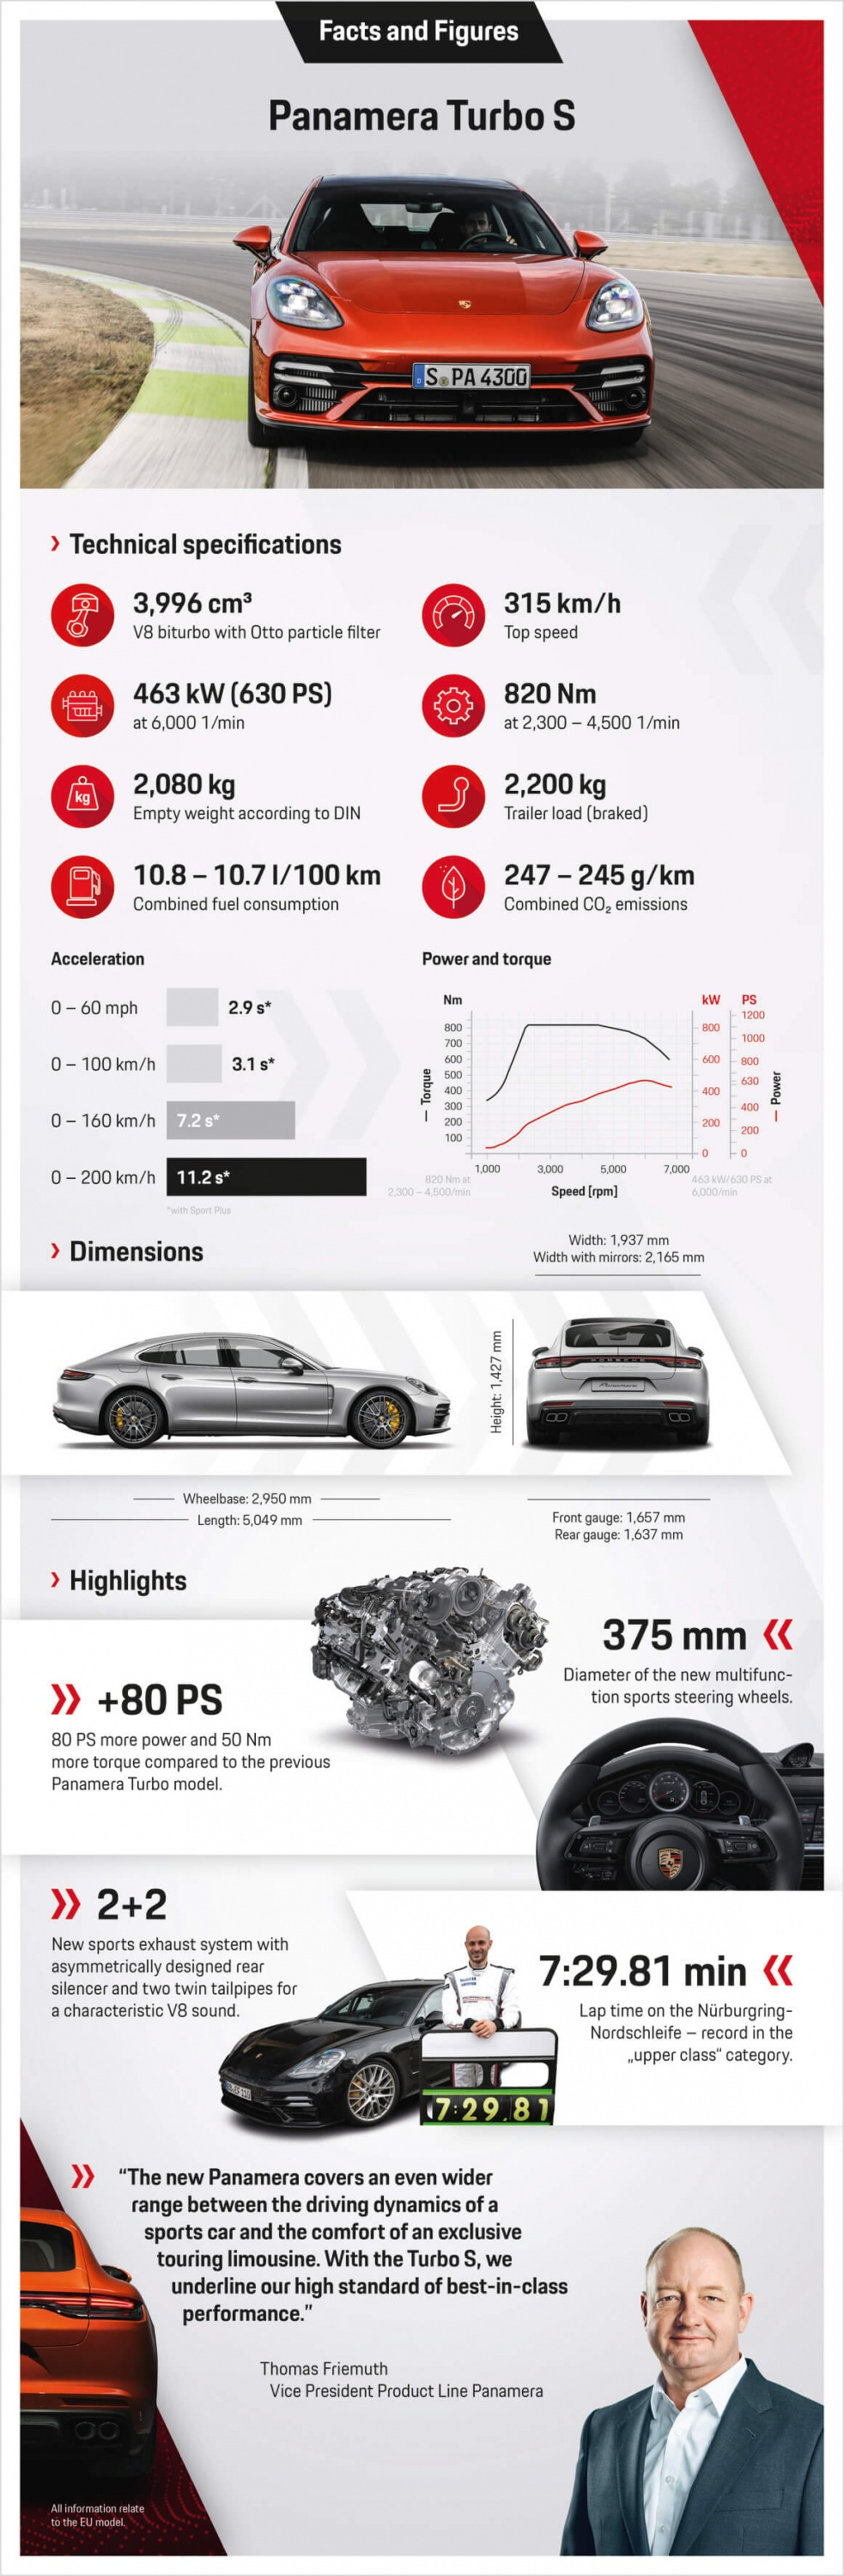 Porsche_Panamera_Turbo_S_Facts_and_Figures_a4.jpg